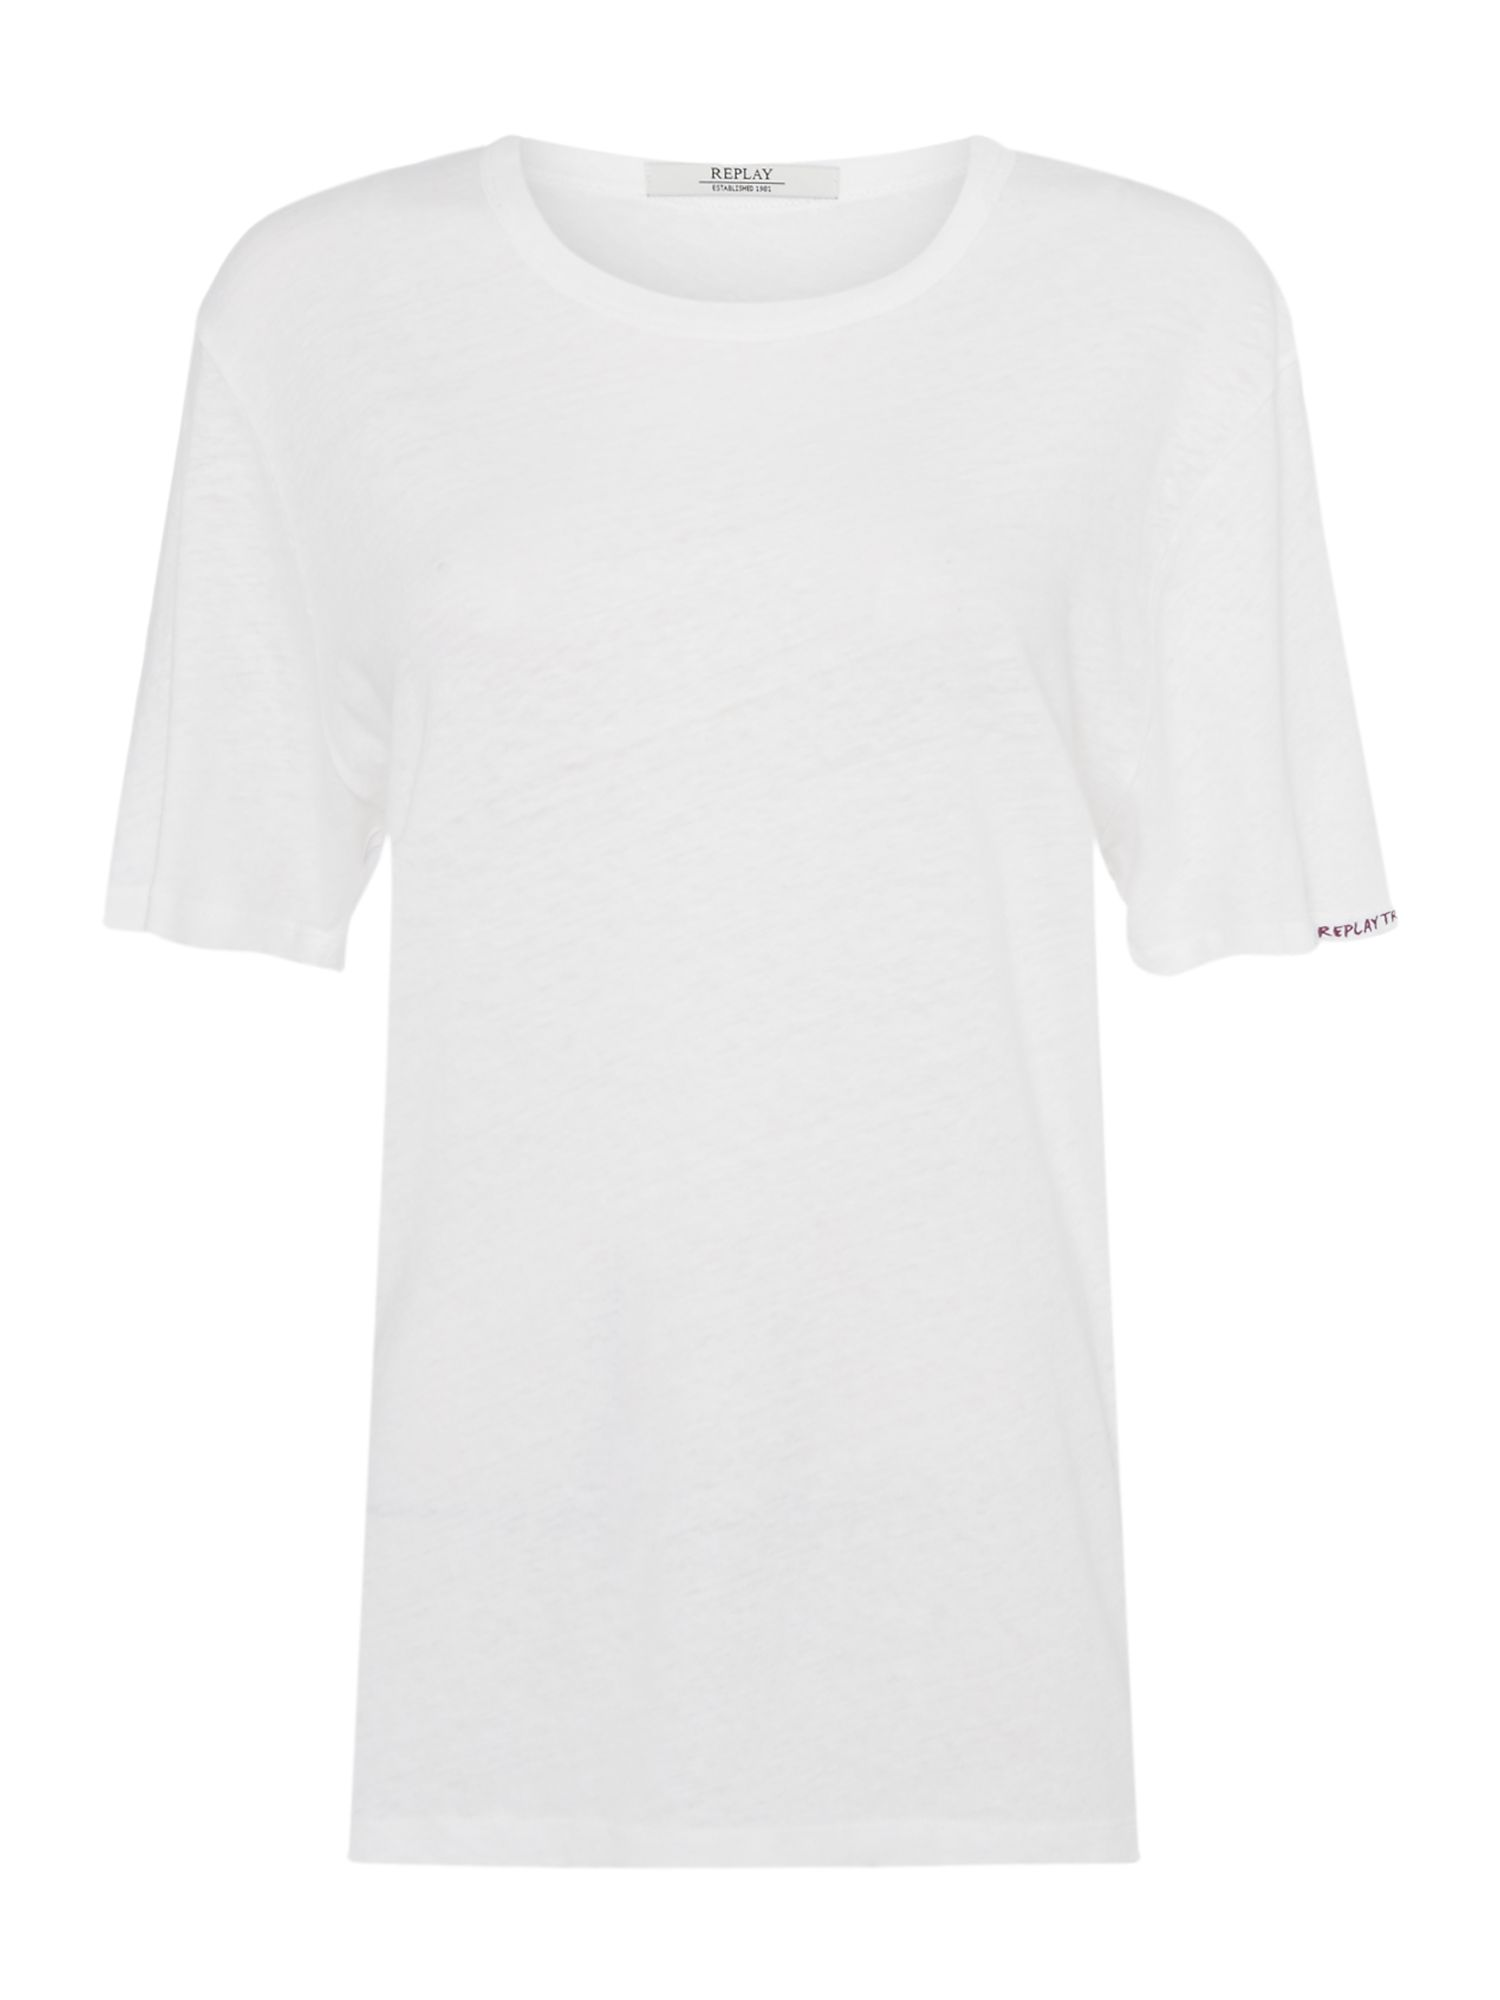 Replay Cotton Linen T-Shirt, White